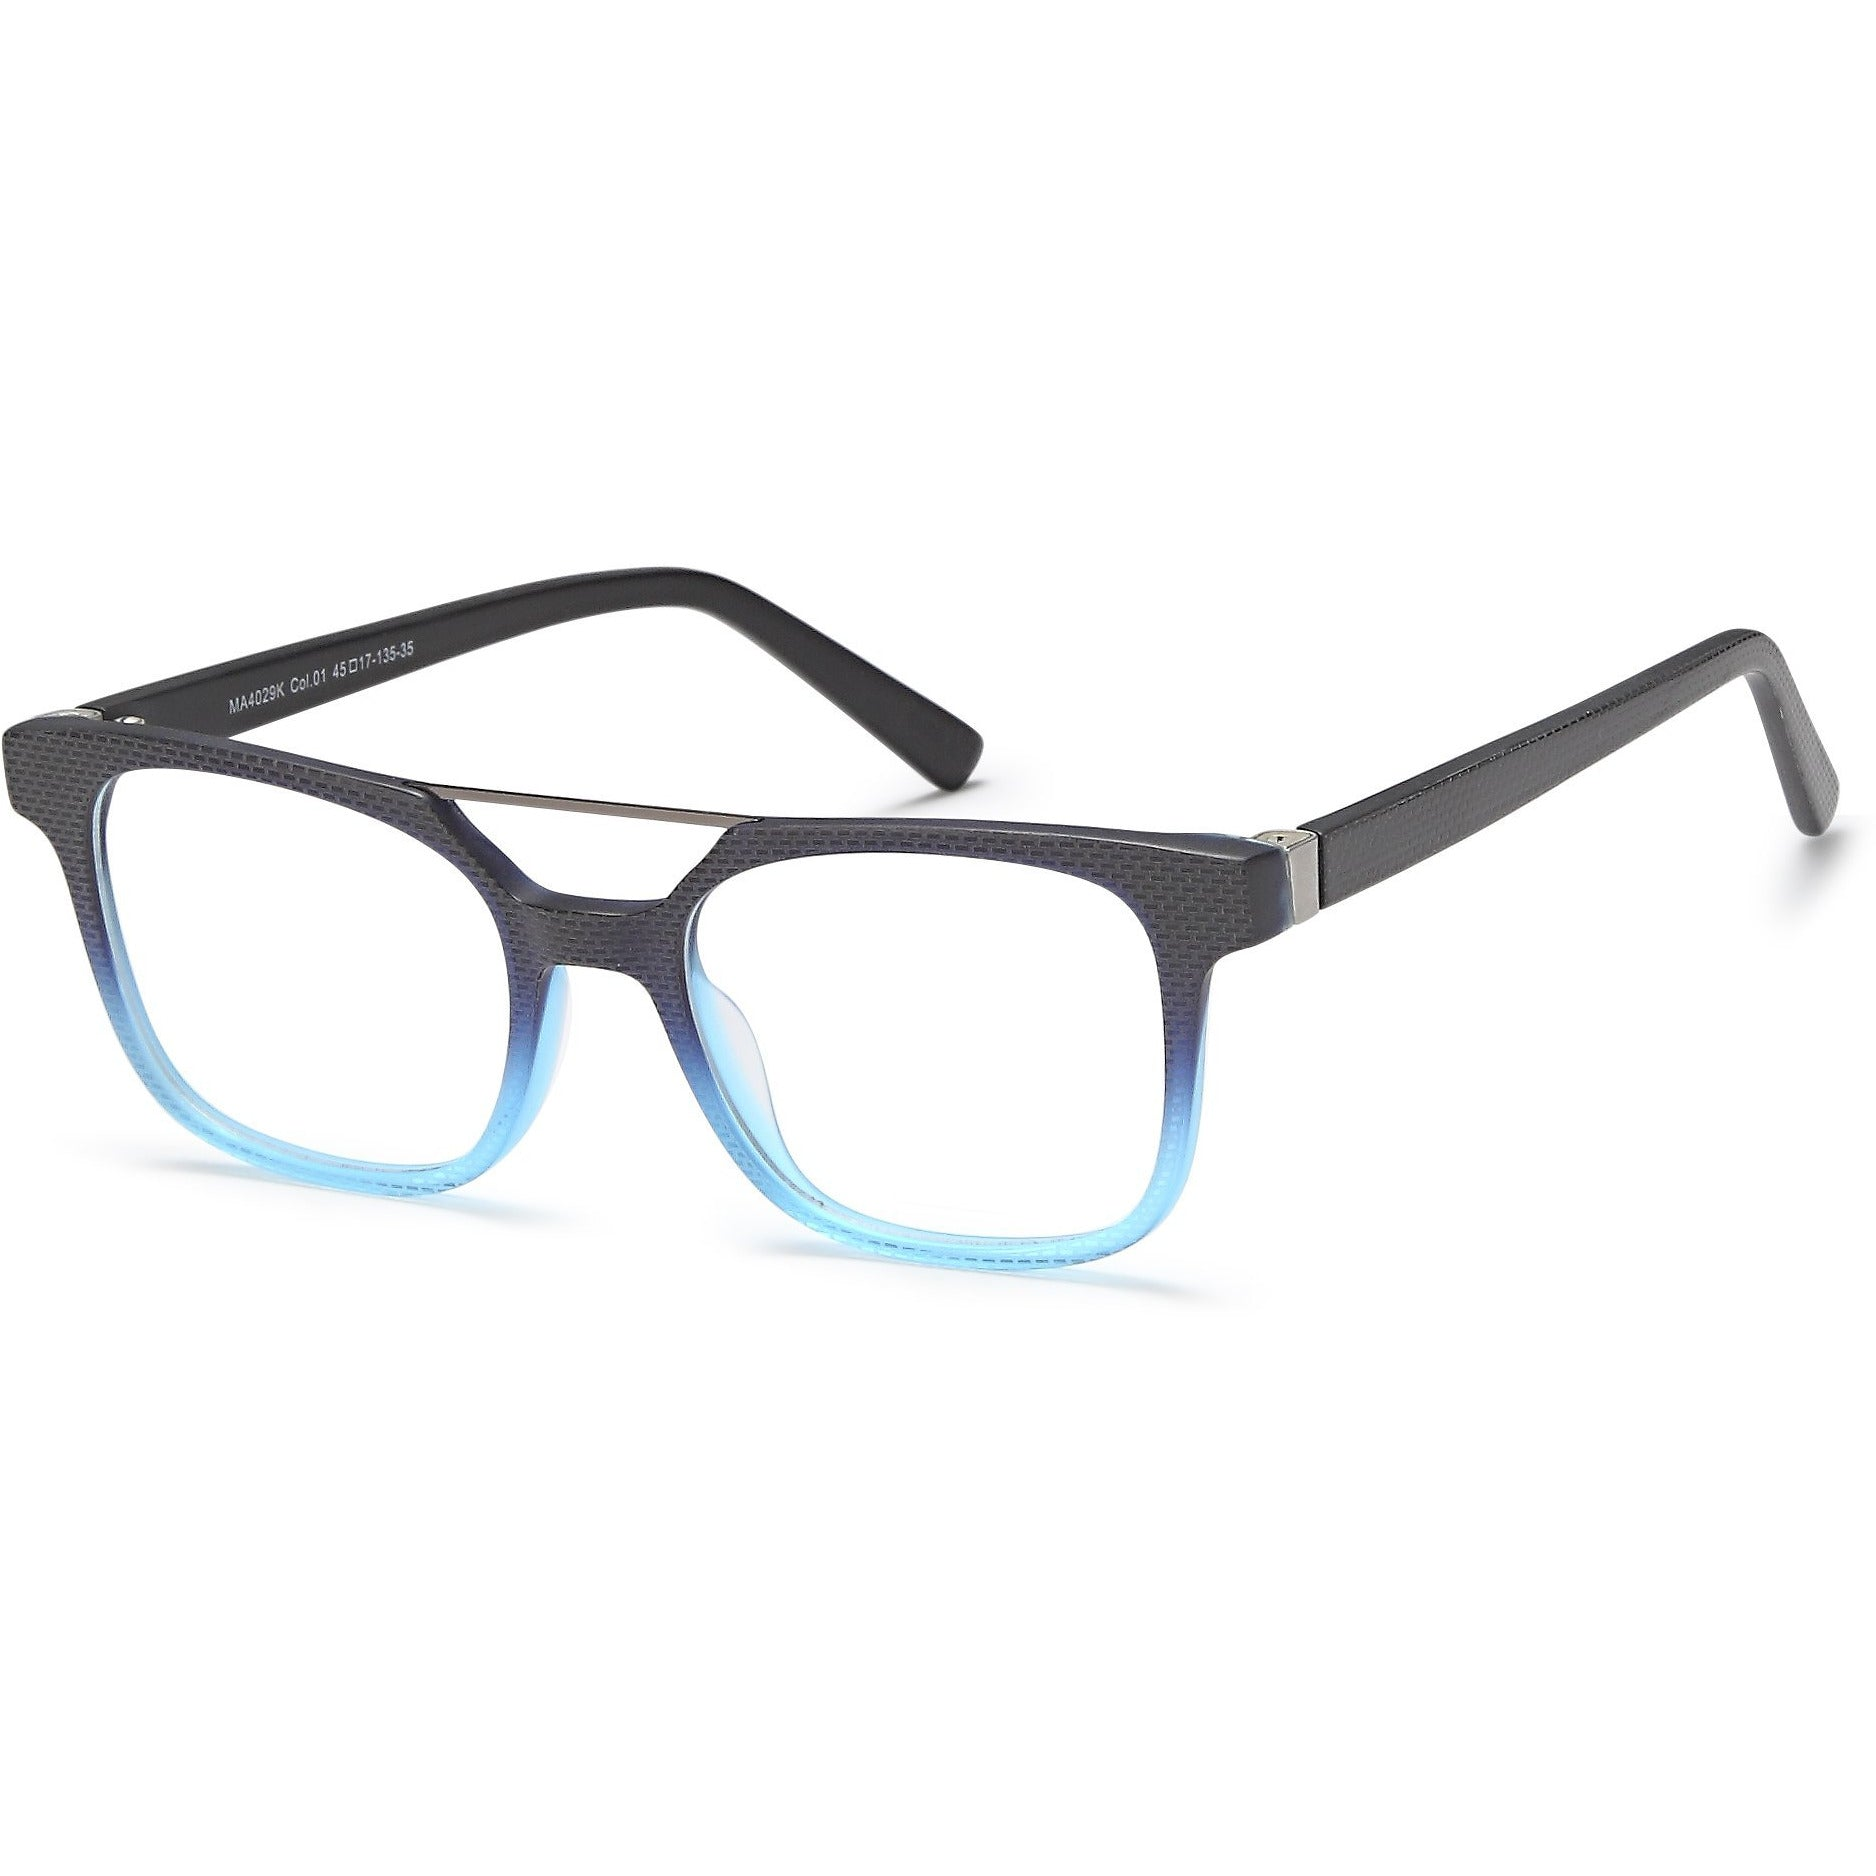 Menizzi Kids Prescription Glasses M4029K Eyeglasses Frames